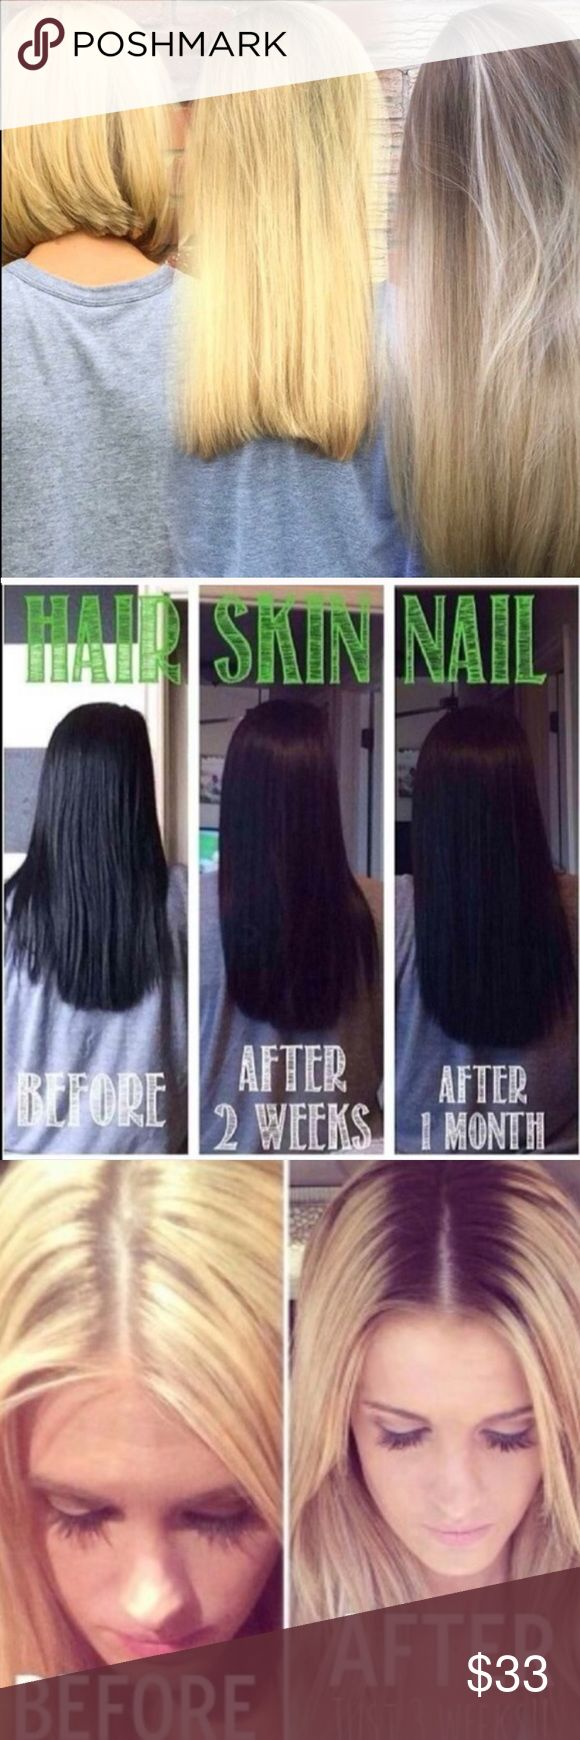 """Itworks hair models needed It works hair models needed! 90 day challenge to grow your hair and nails for fall at my price! comment/text 678.920.0568 """"long hair"""" for details. I have a few spots left!  **DONT BUY THIS LISTING** Other"""